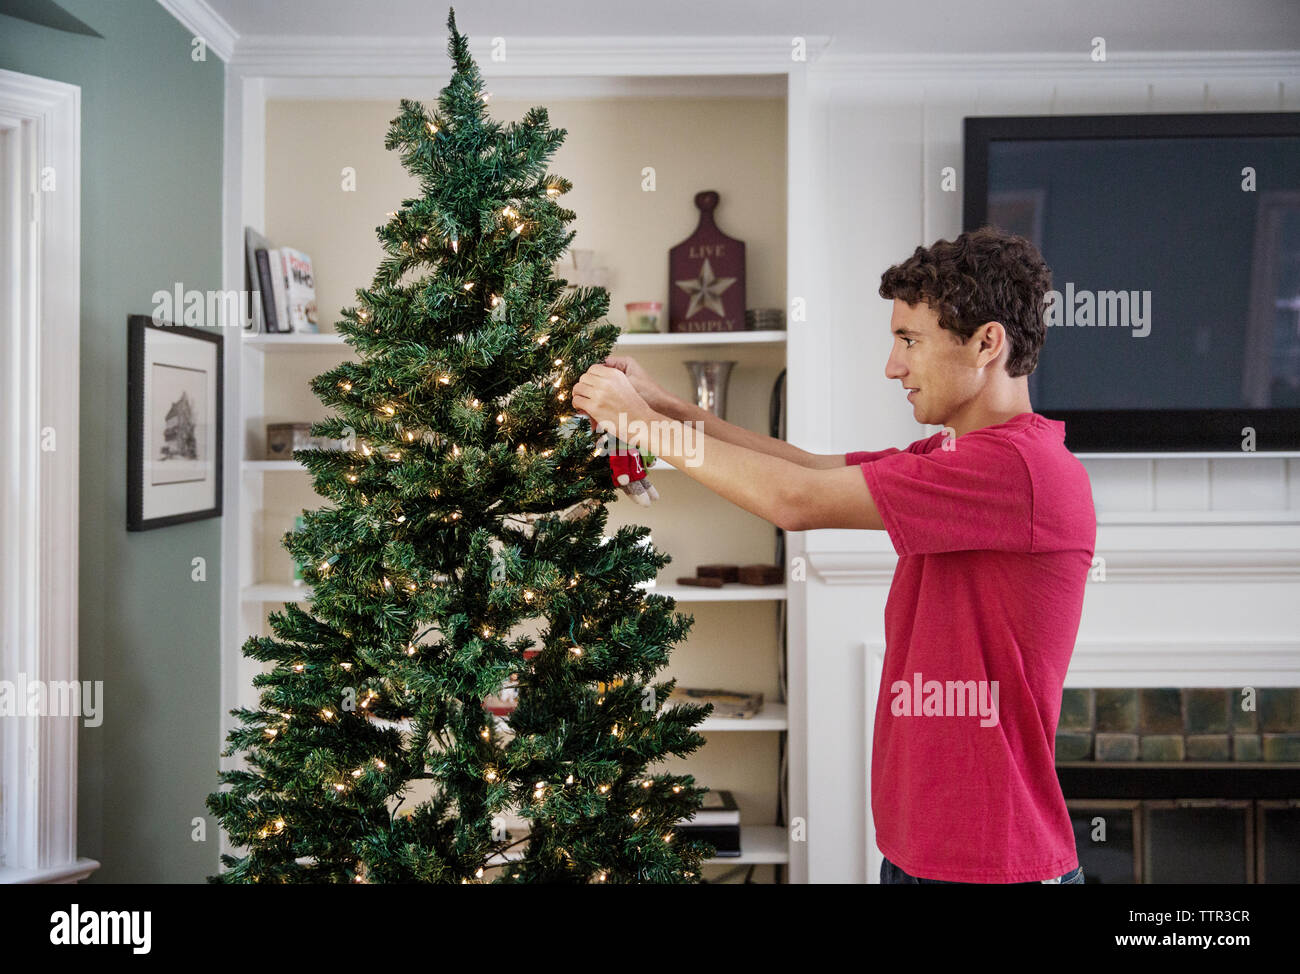 Side view of man decorating Christmas tree at home - Stock Image